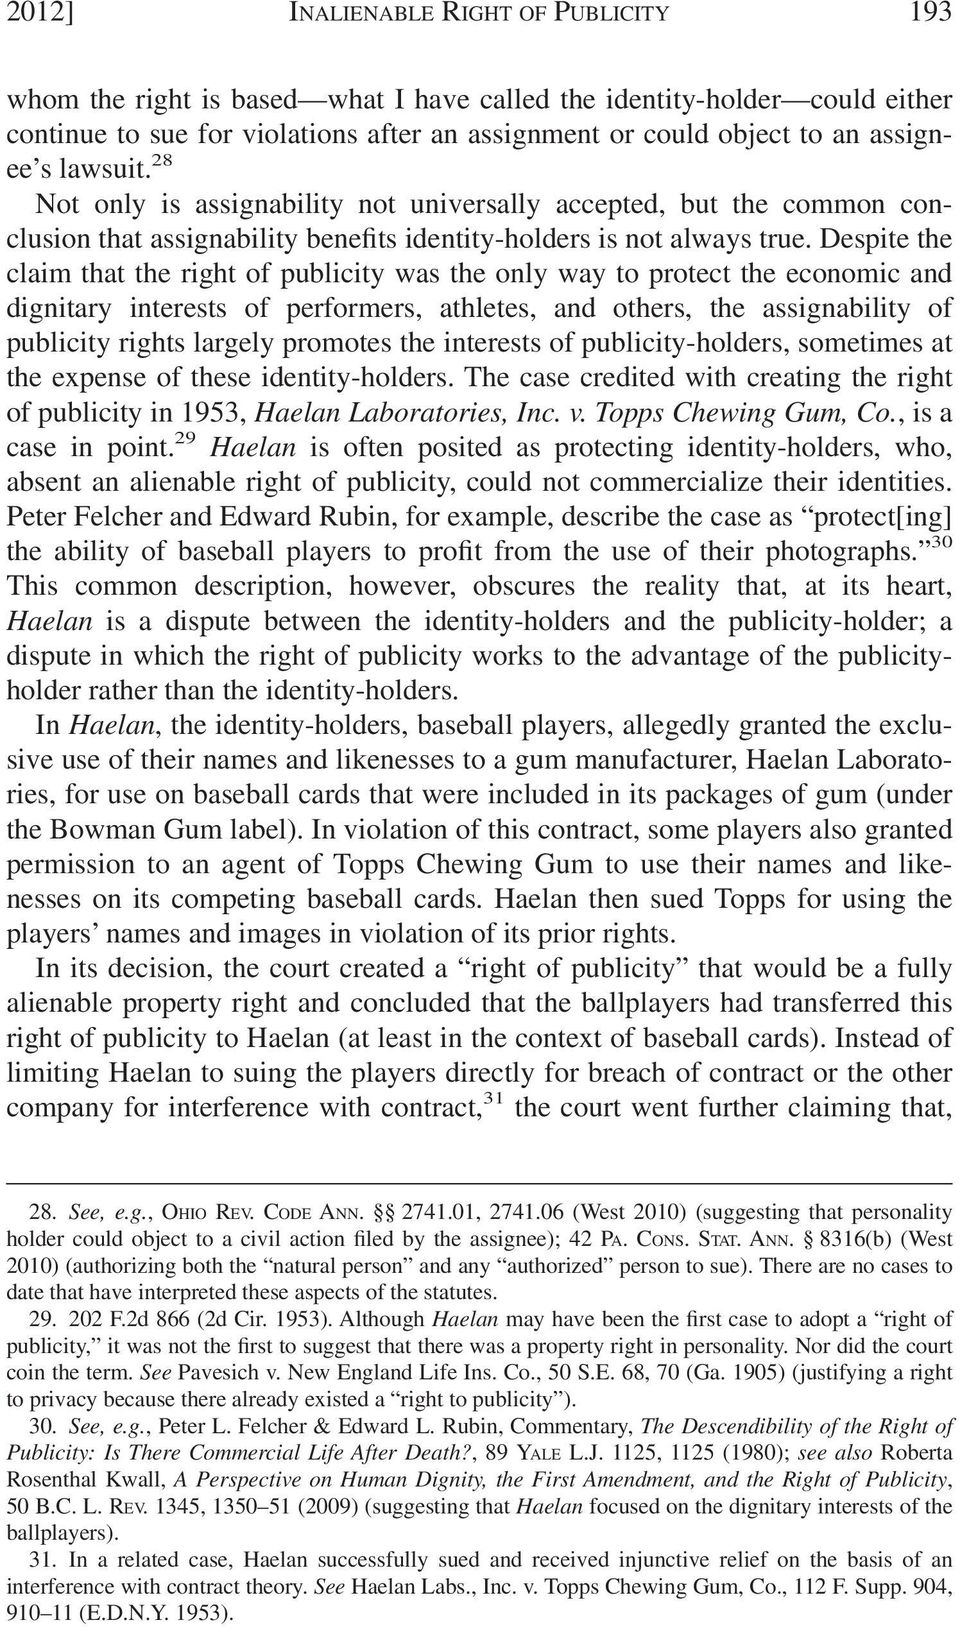 Despite the claim that the right of publicity was the only way to protect the economic and dignitary interests of performers, athletes, and others, the assignability of publicity rights largely